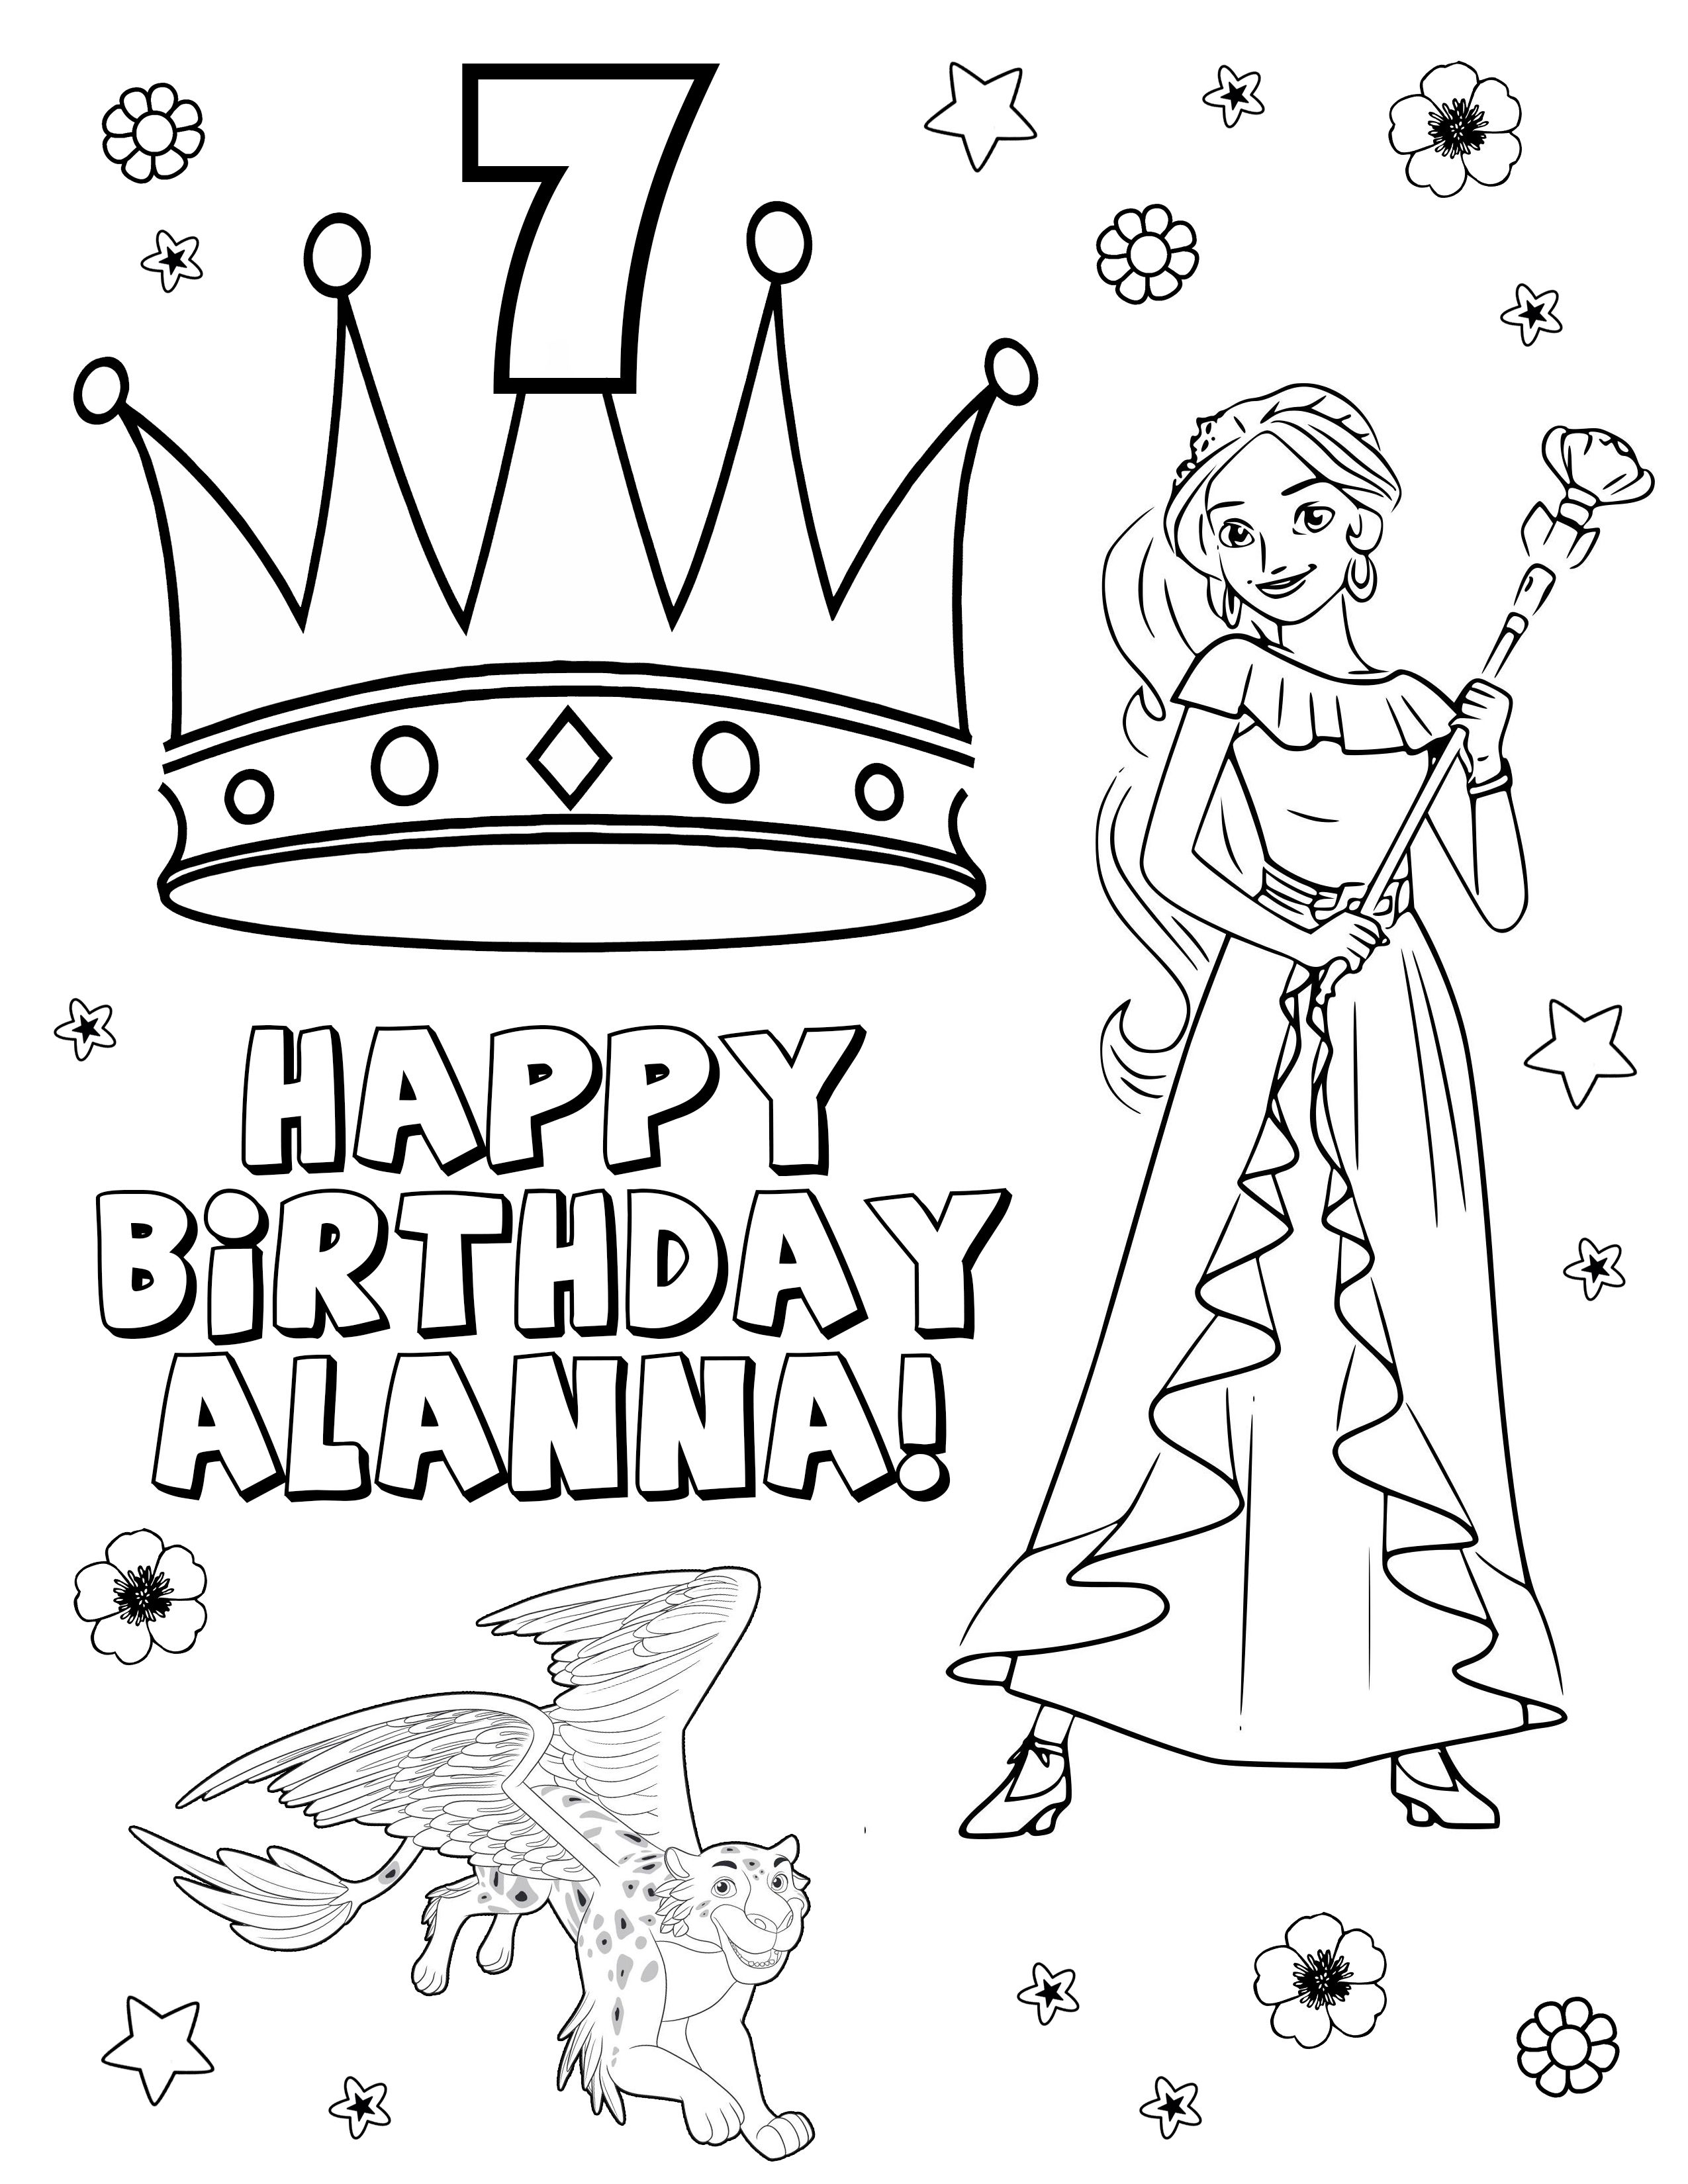 Elena Of Avalor Coloring Pages Elena Of Avalor Birthday Party Elena Of Avalor Print Elena Of Avalor Download Coloring Pages Birthday Happy Birthday